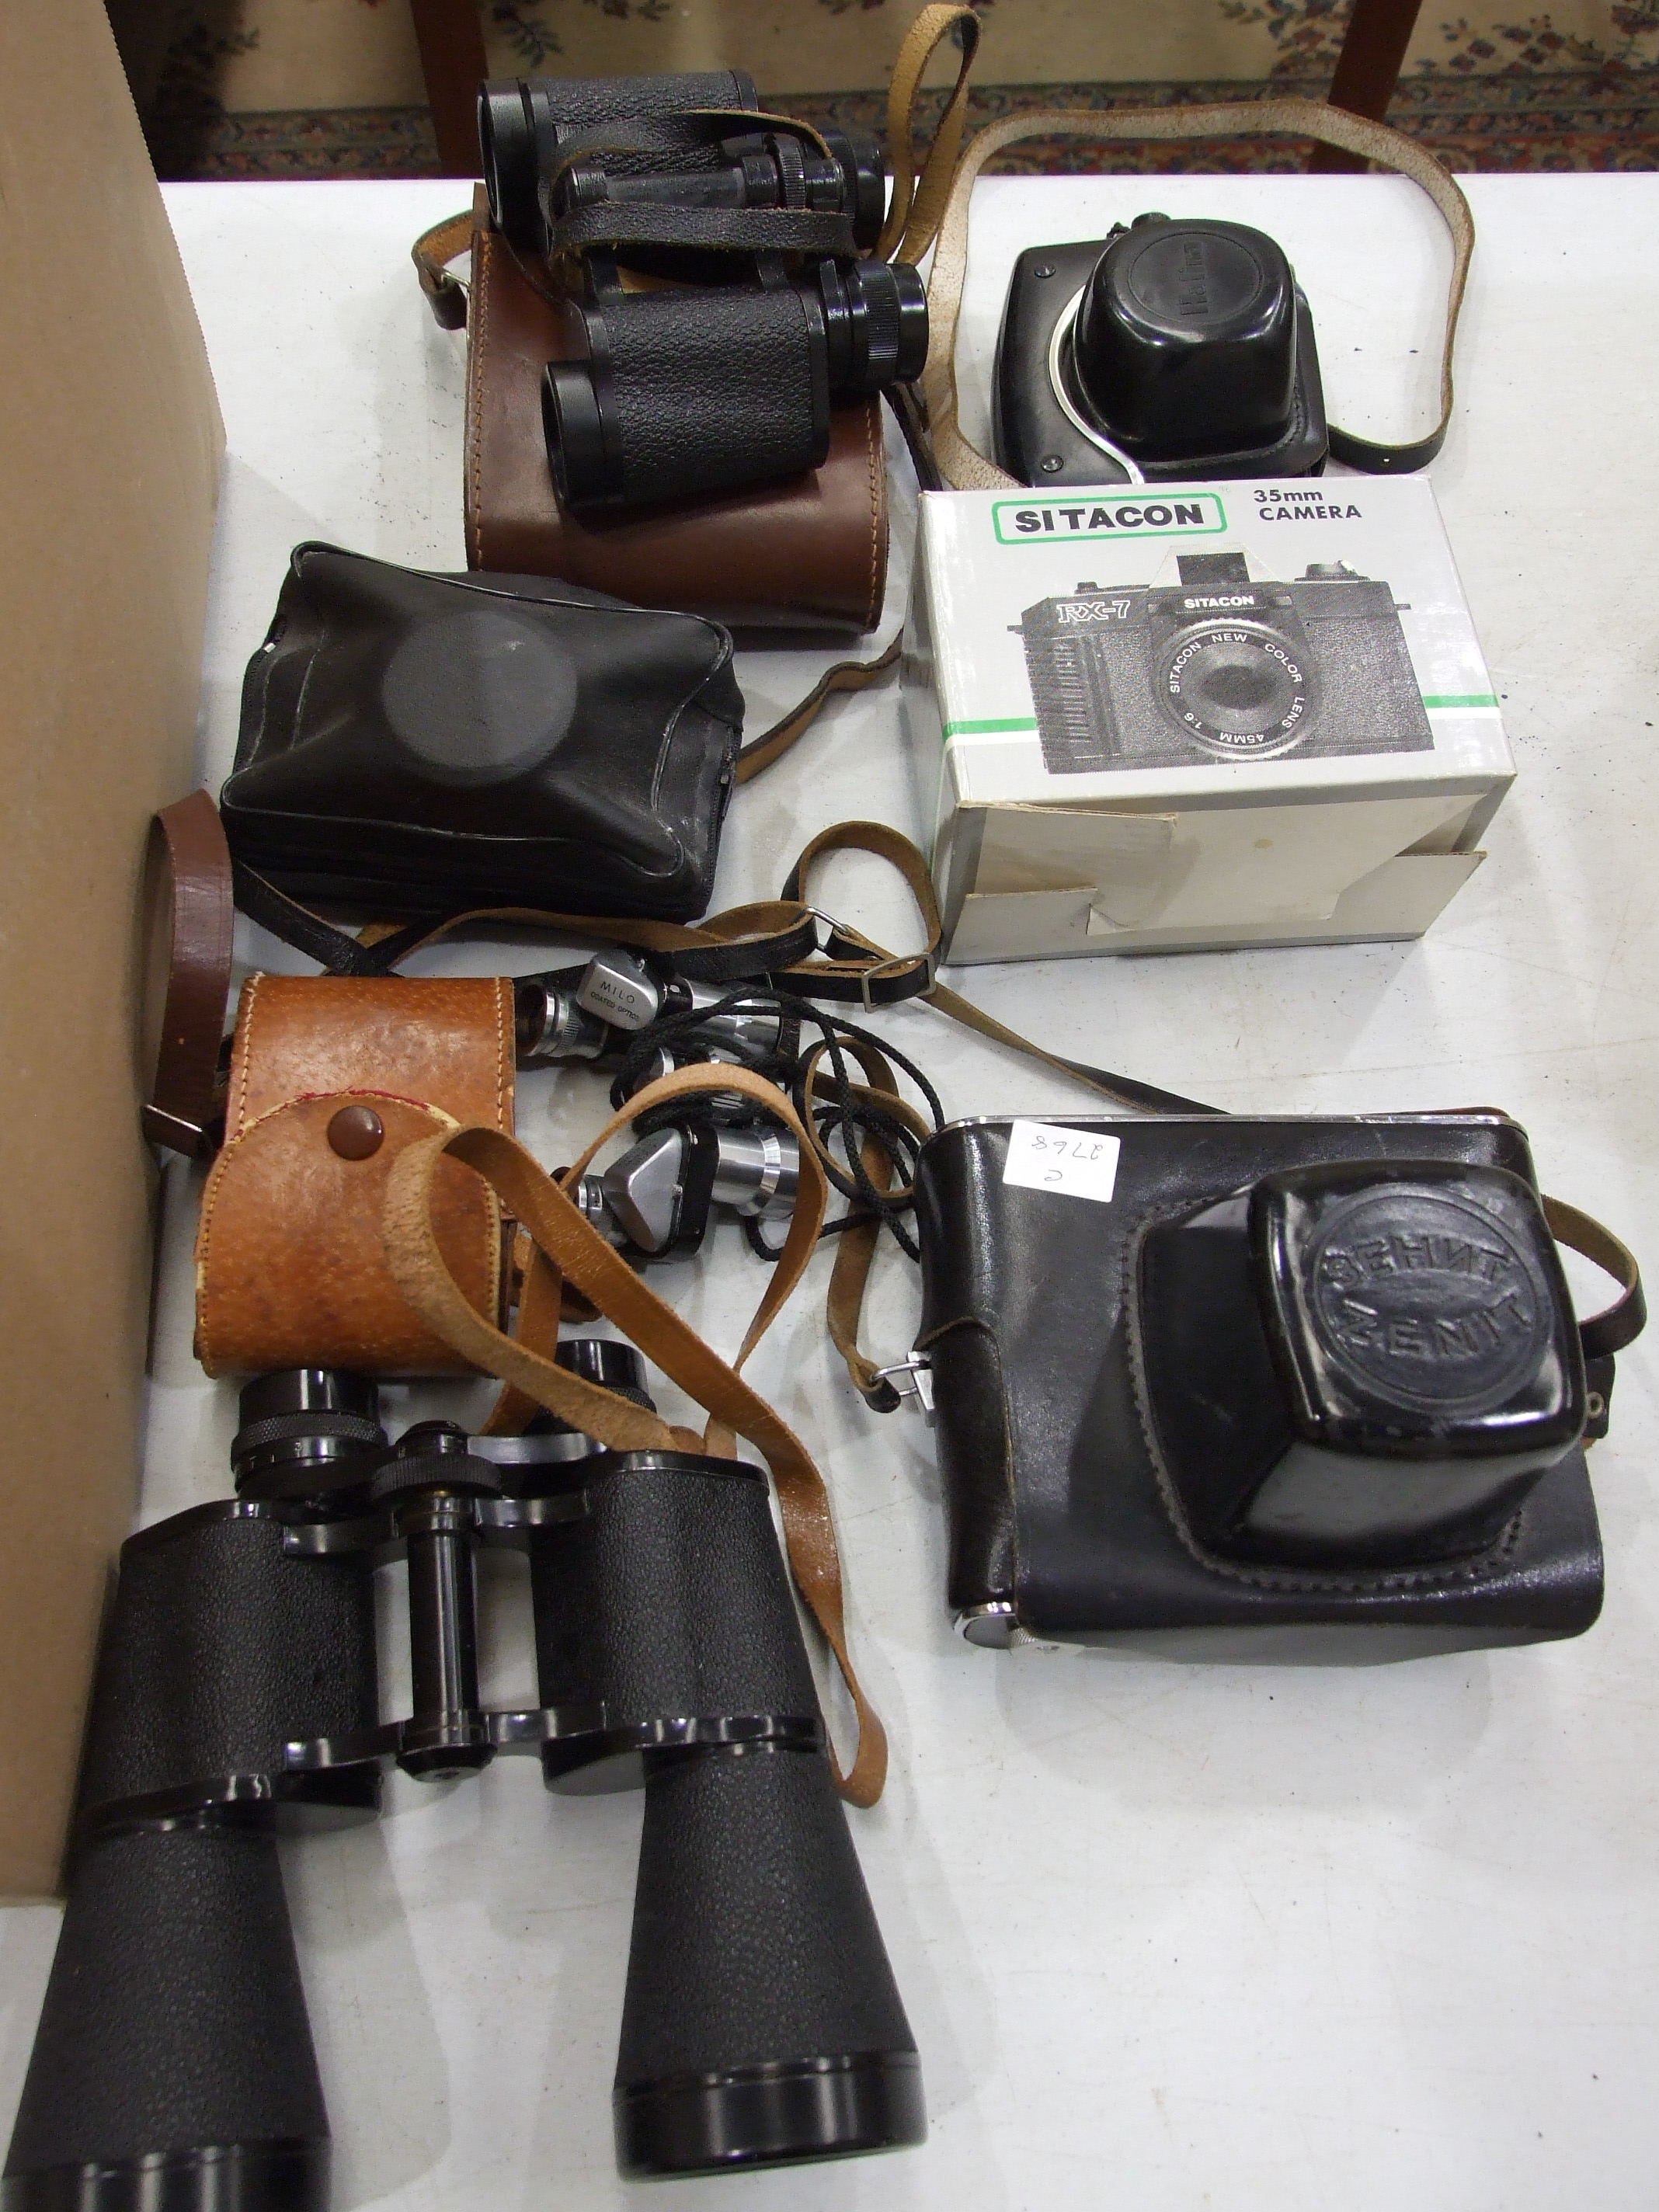 A Zenit-E 35mm camera in case, a Halina camera, other cameras, a pair of Milo 7 x 18 field glasses